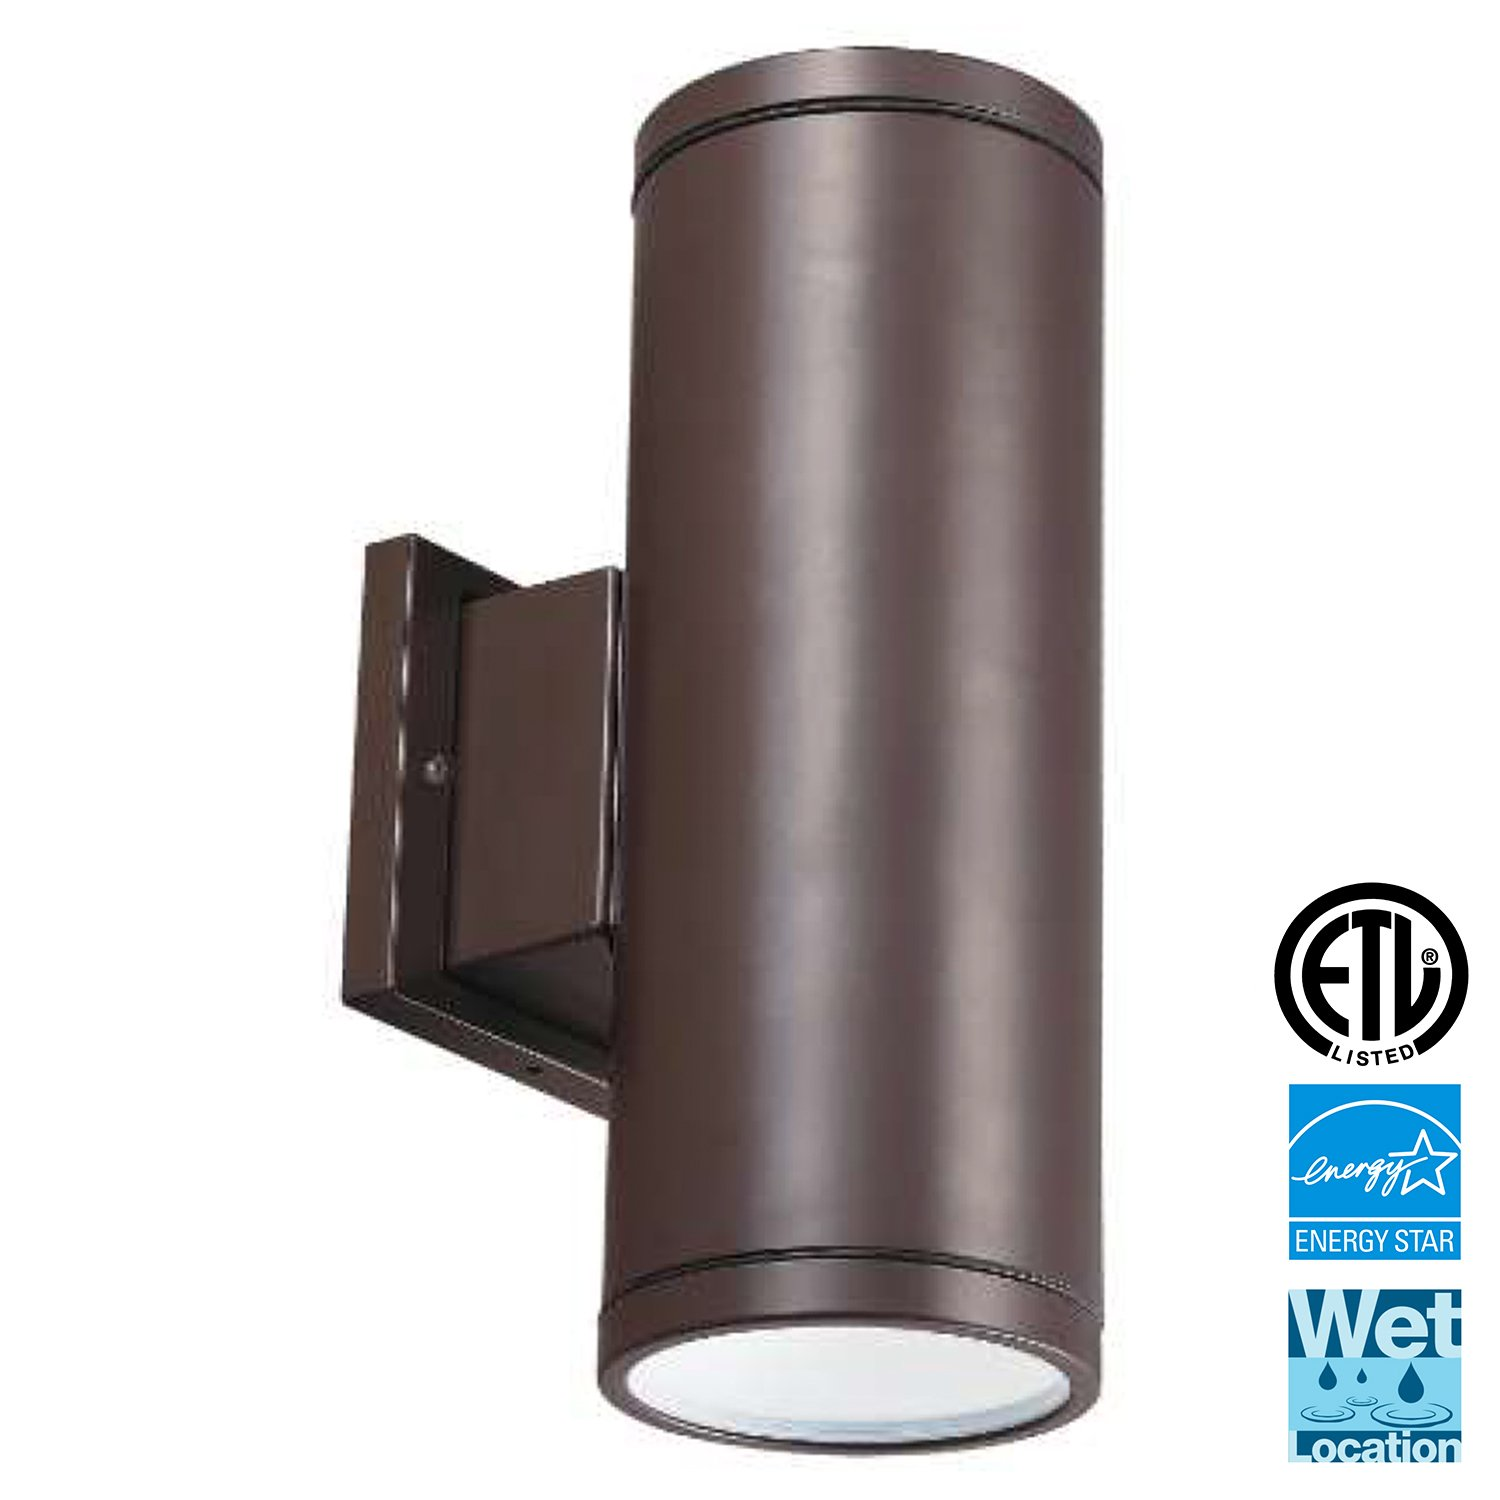 LED Outdoor Up & Down Wall Light, Light Blue™ 12'' Waterproof and Outdoor Lighting Fixture for Building Home Security and Walkways, 3000K Soft White, 1260 Lumens, ETL and Energy Star certified